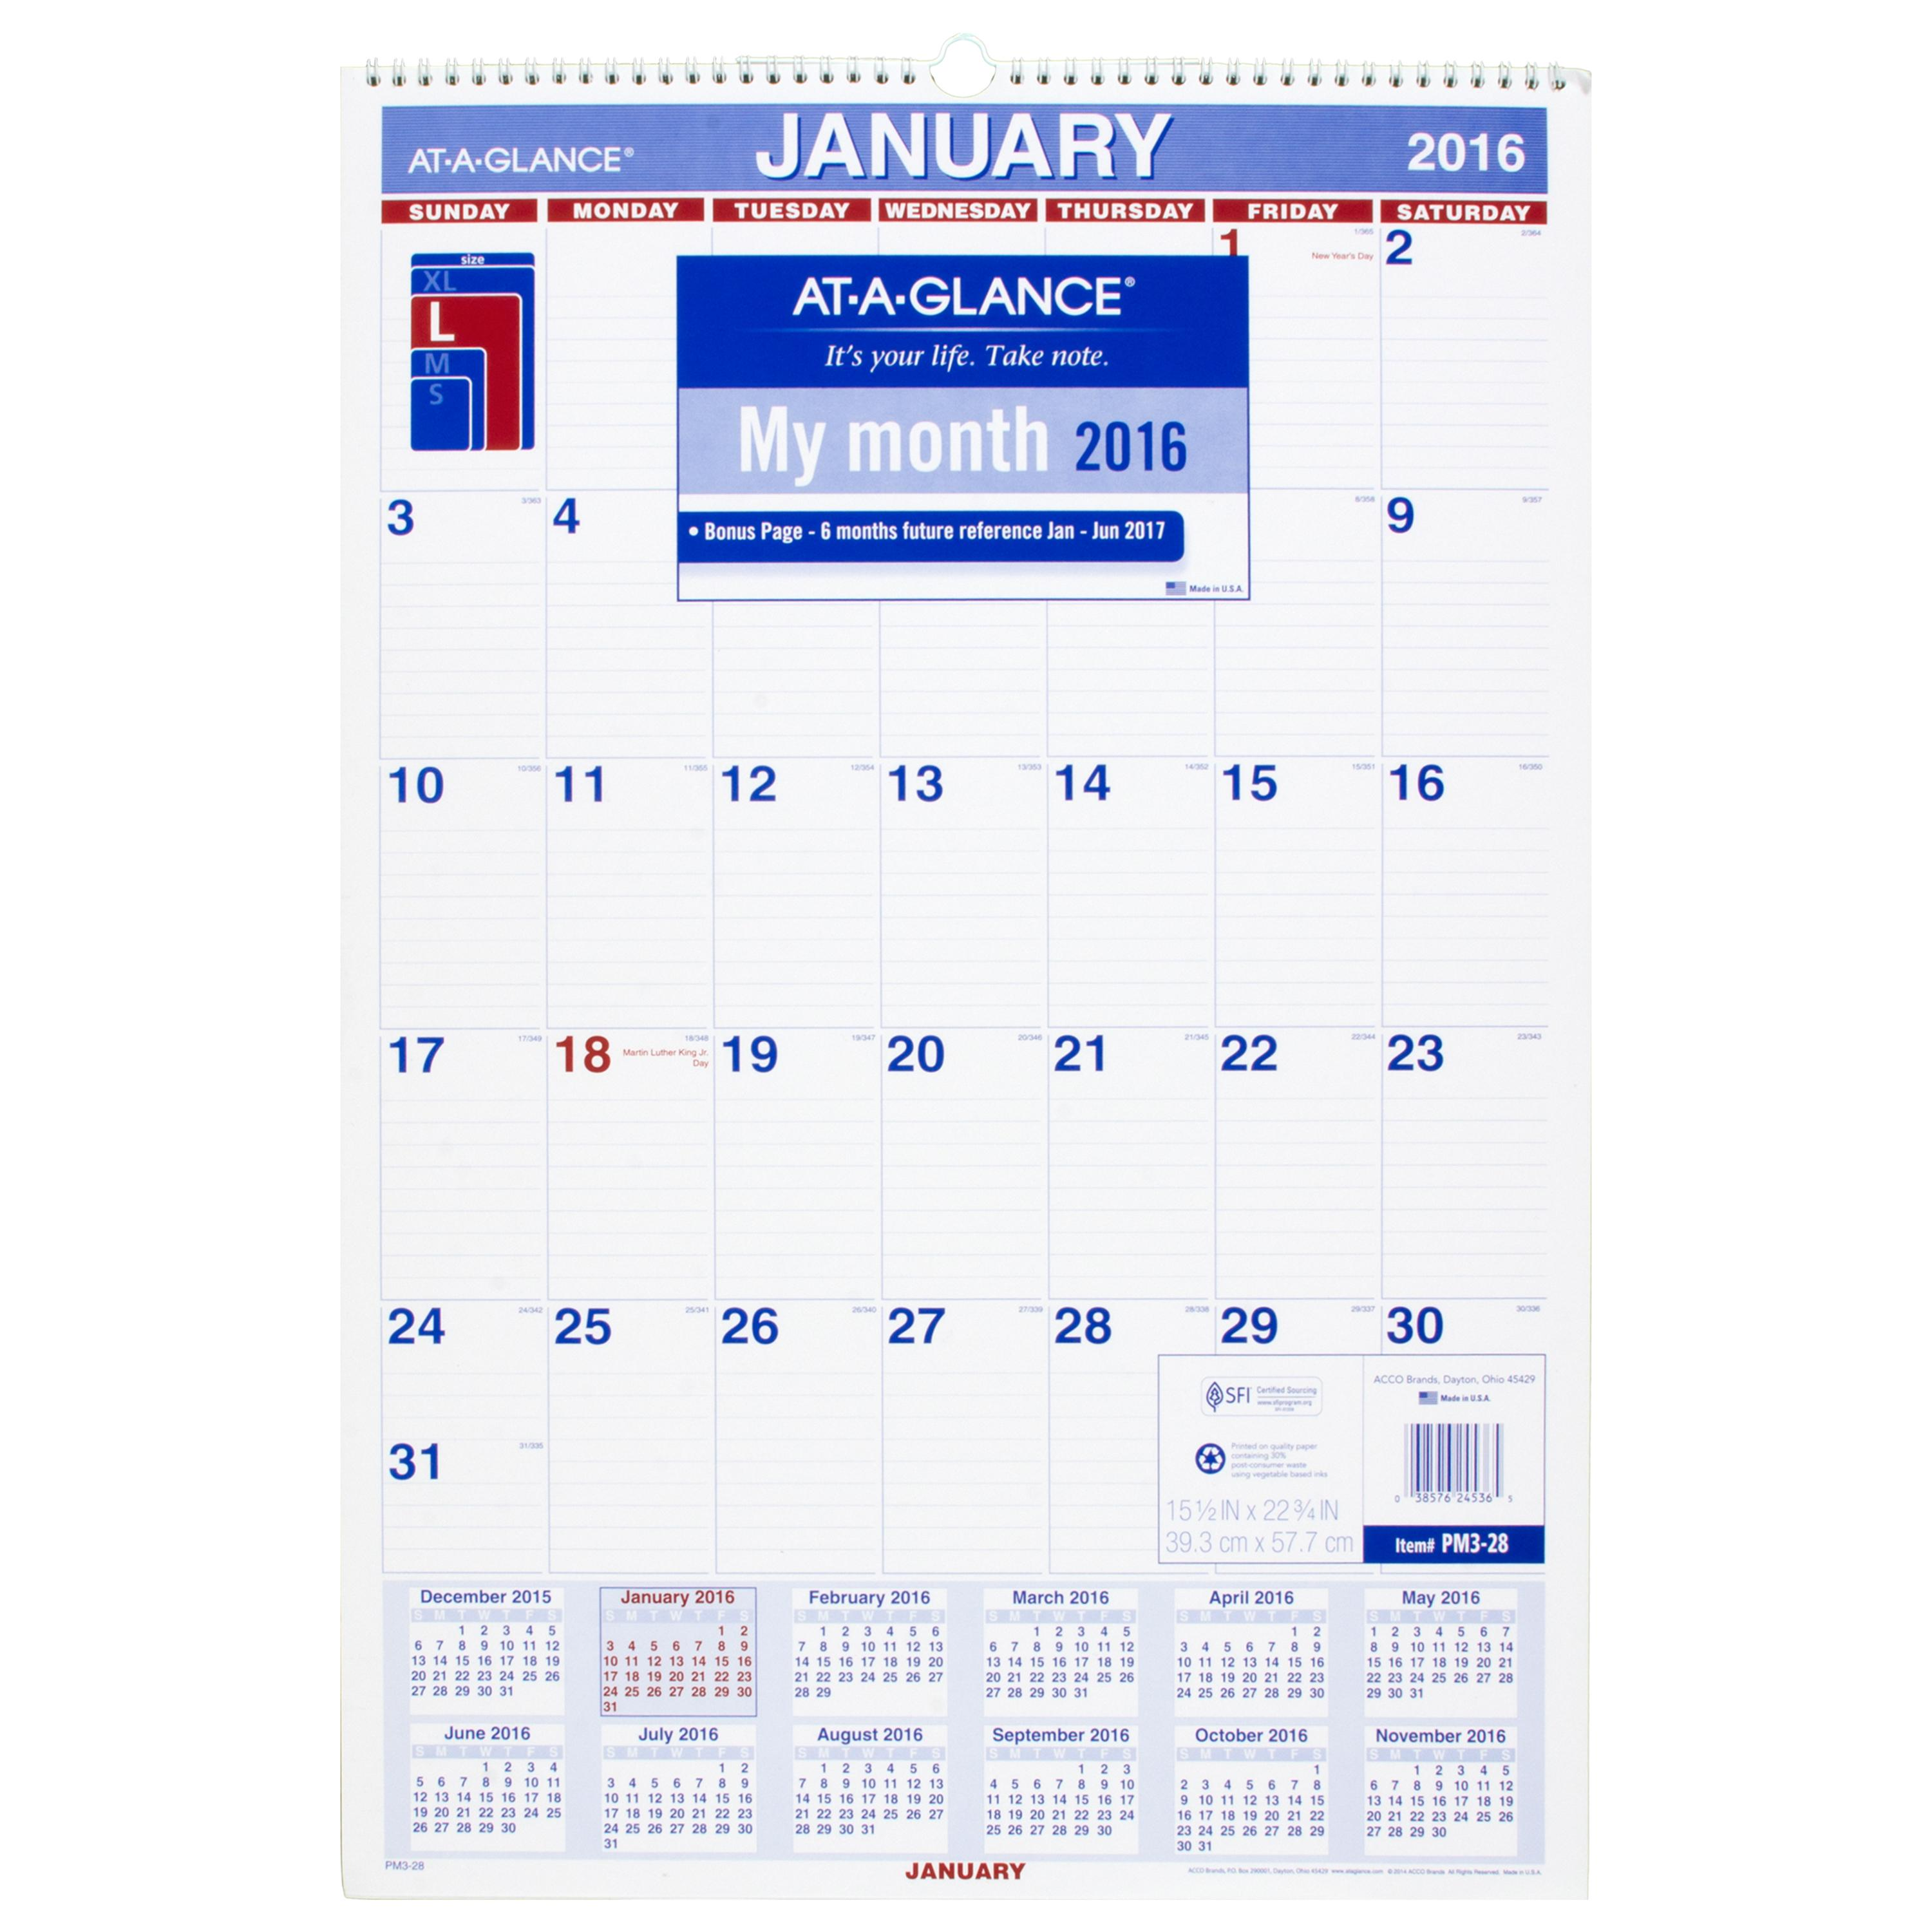 Amazon.com : AT-A-GLANCE Monthly Wall Calendar 2017, 15.5 x 22.75 ...